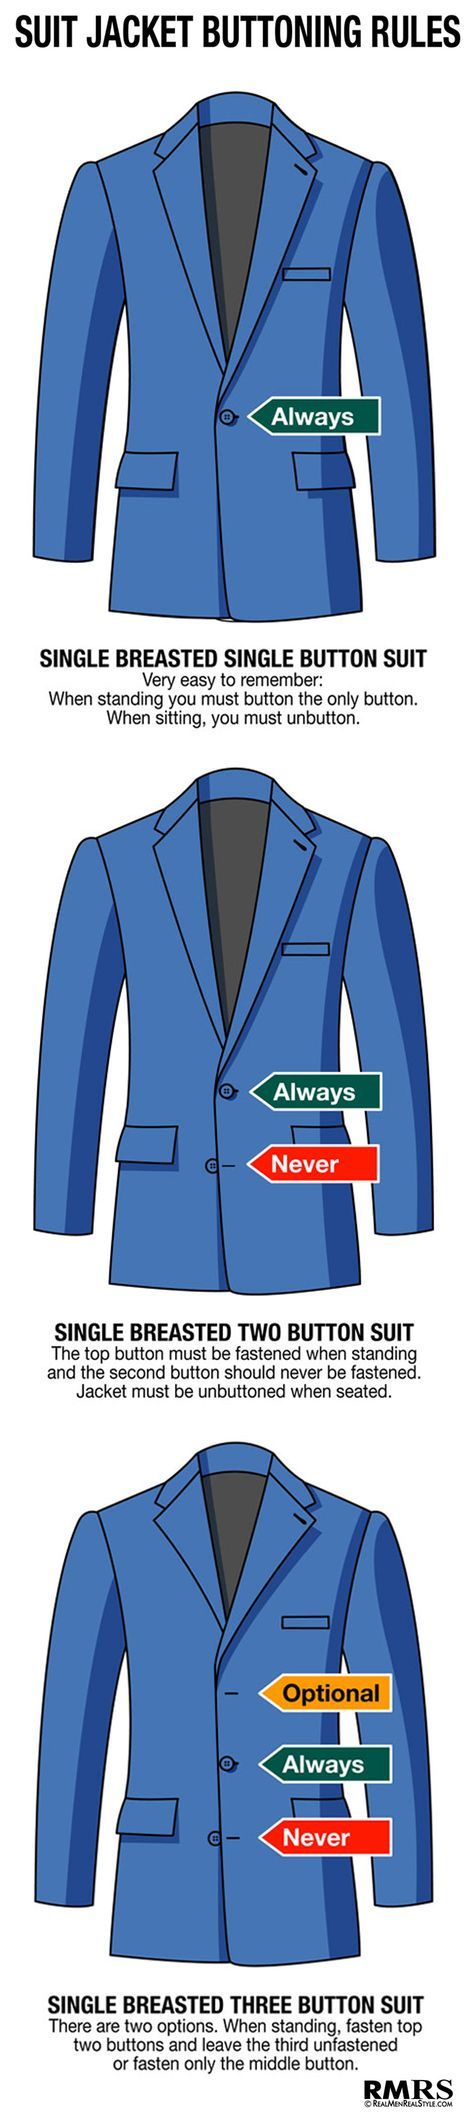 How To Button Your Suit Correctly Infographic